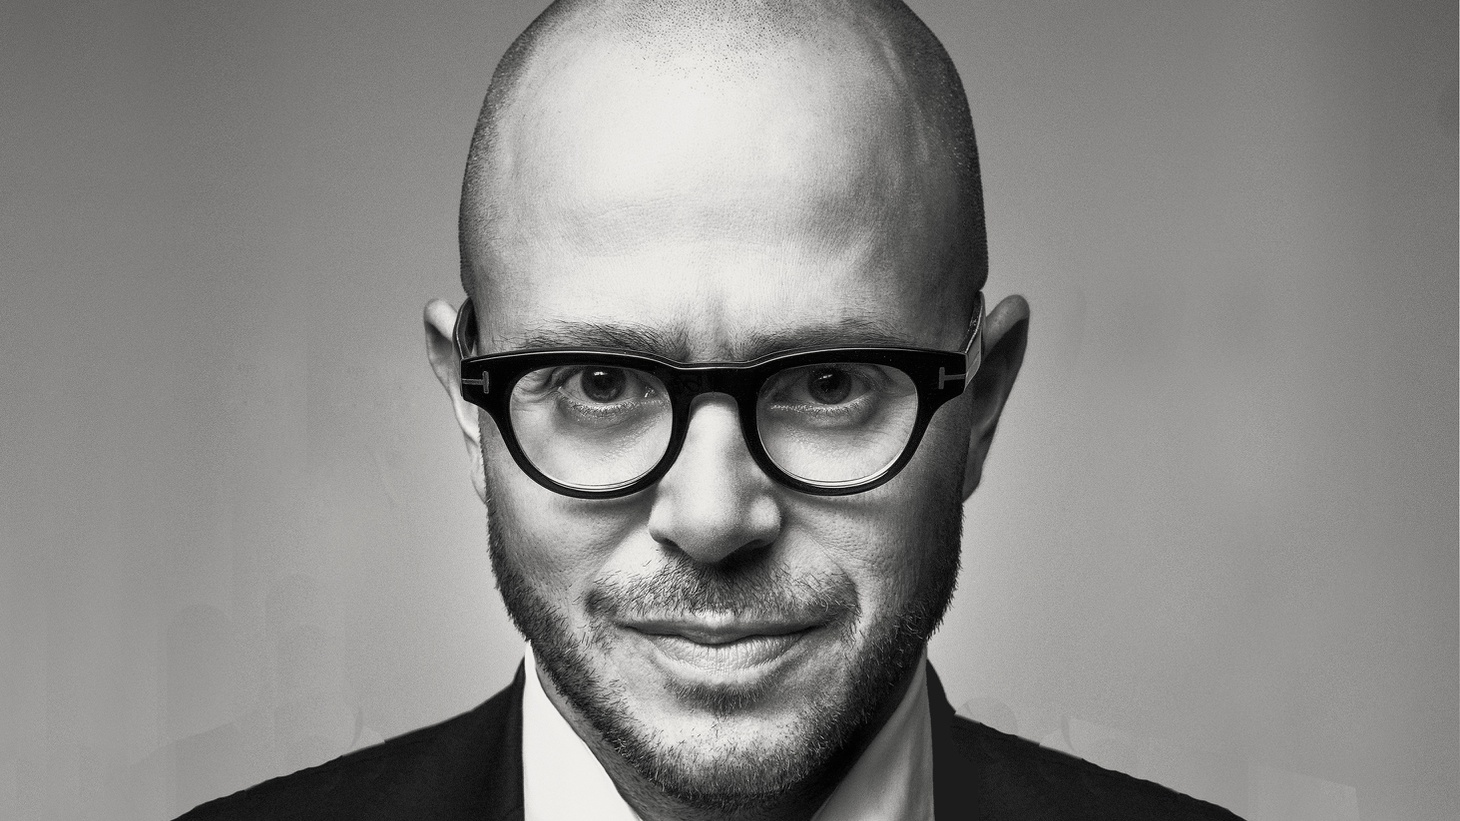 Writer-producer Damon Lindelof wrapped up the hit series Lost in 2010, and he still gets lashed by fans who hated the ambiguous ending. Now as Lindelof launches the final season of The Leftovers on HBO -- another series that revolves around a mystery -- he still cares what people think of his work, but this time, he's stay far away from Twitter.